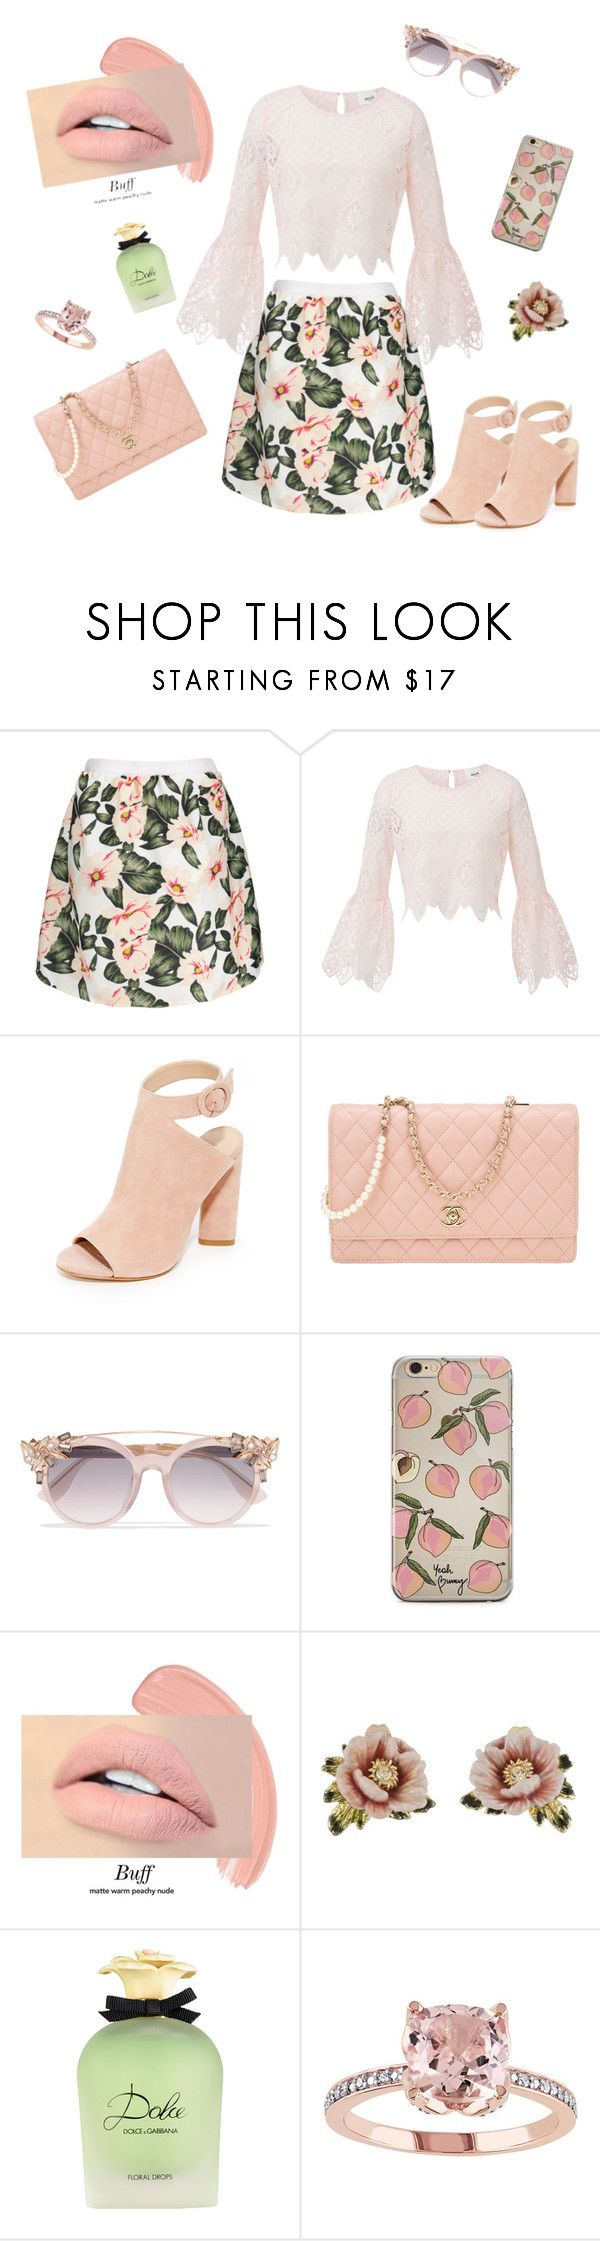 """""""Madgirl's Love Song"""" by timmermanellen ❤ liked on Polyvore featuring Kendall + Kylie, Chanel, Jimmy Choo, Les Néréides and Dolce&Gabbana"""